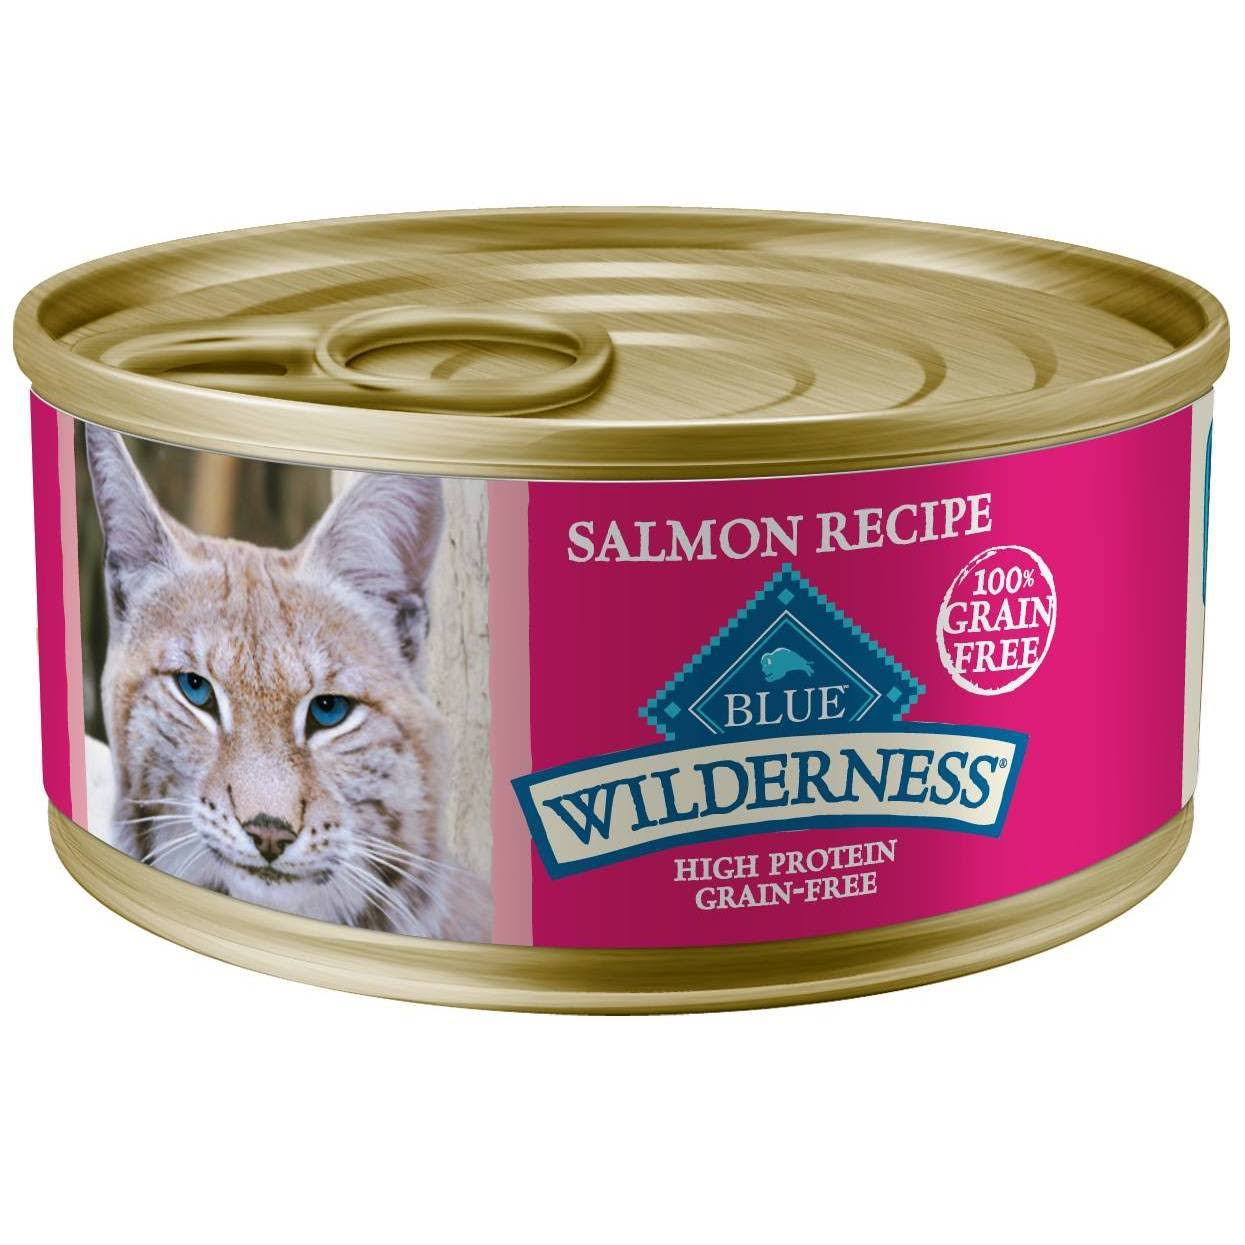 Blue Wilderness Food for Cats, Natural, Salmon Recipe - 5.5 oz